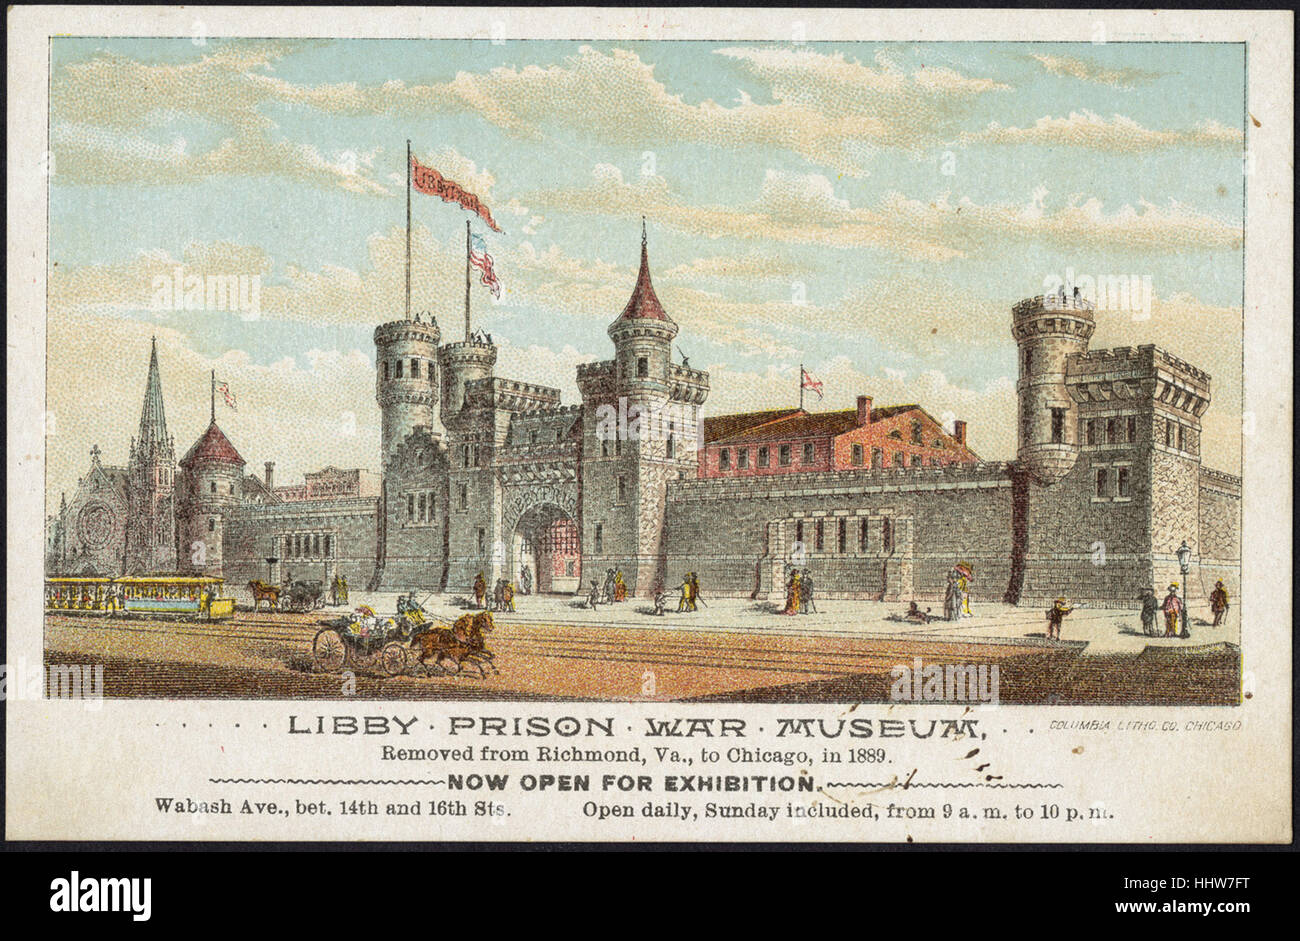 Libby Prison War Museum removed from Richmond, Va. to Chicago, in 1889. [front]  - Leisure, Reading, and Travel - Stock Image